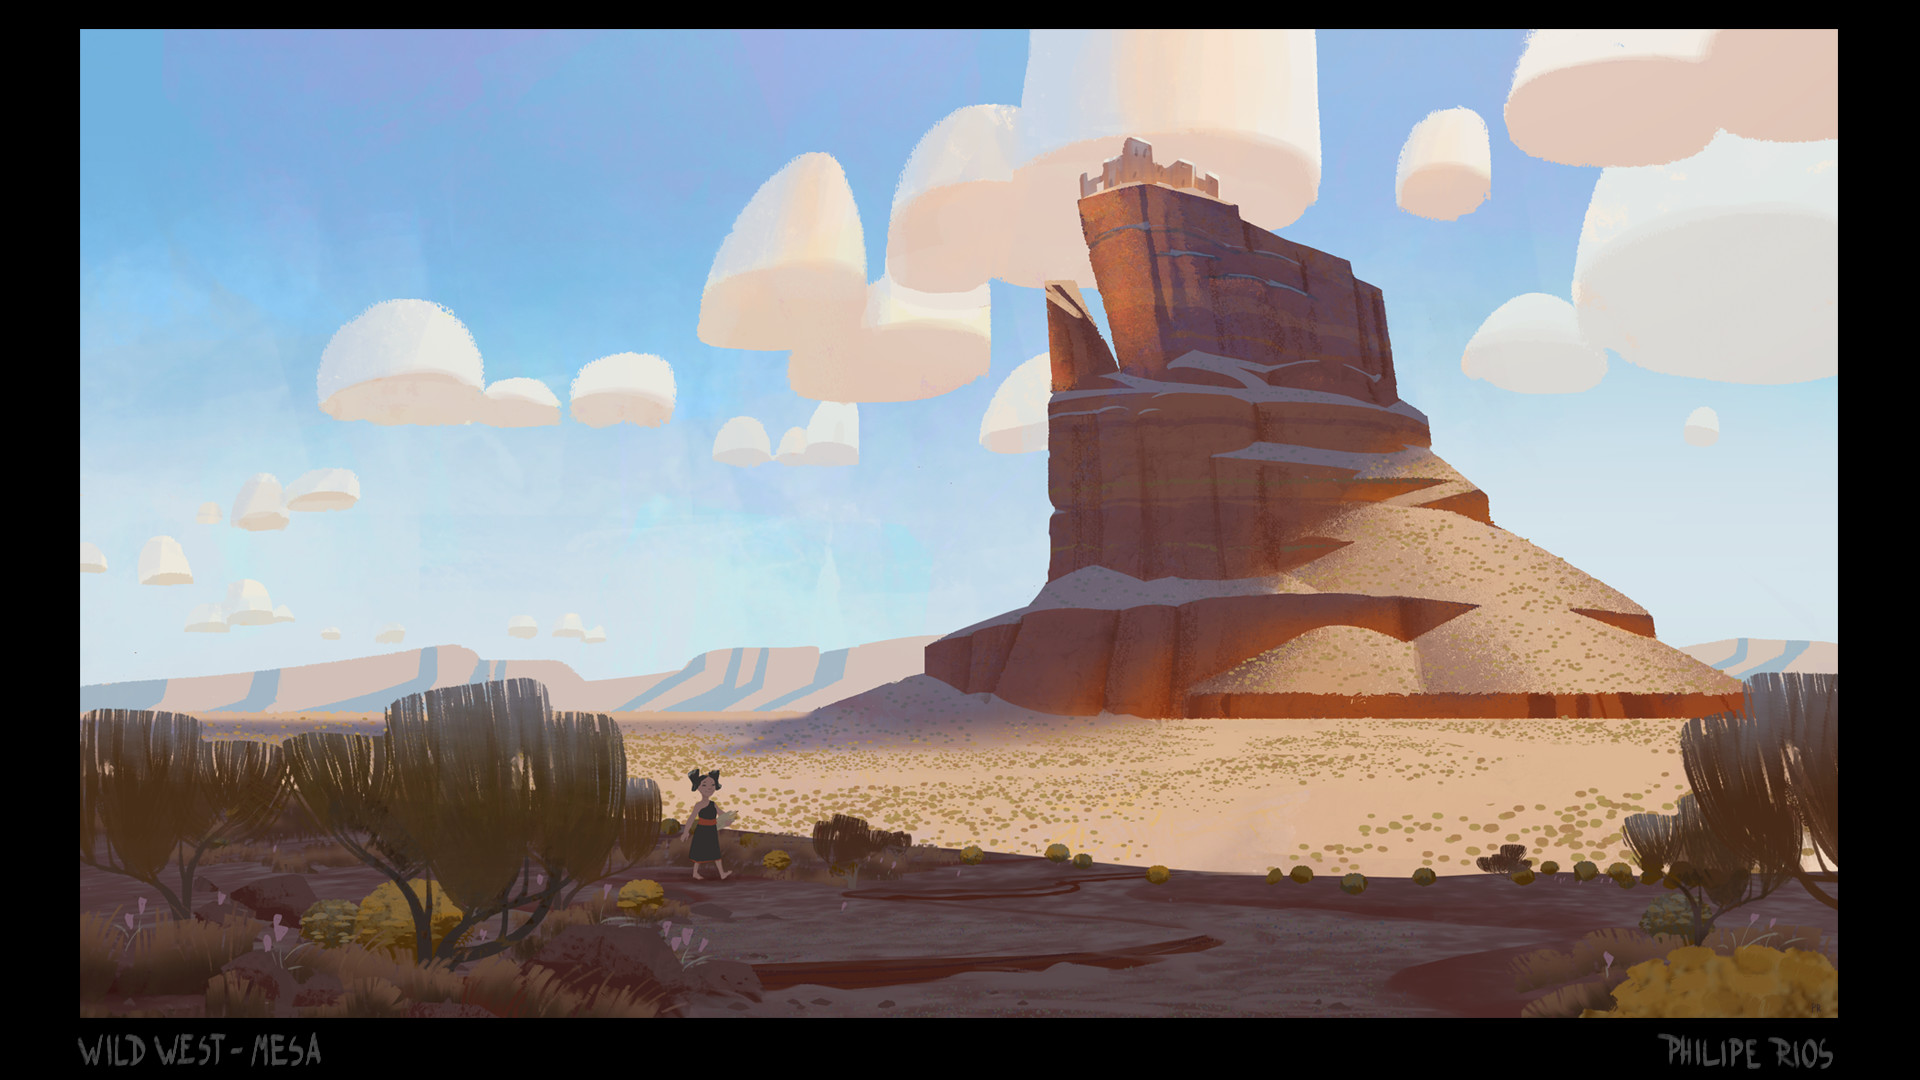 https://cdnb.artstation.com/p/media_assets/images/images/000/228/053/large/Hopi_Mesa_final-Philipe_Rios.jpg